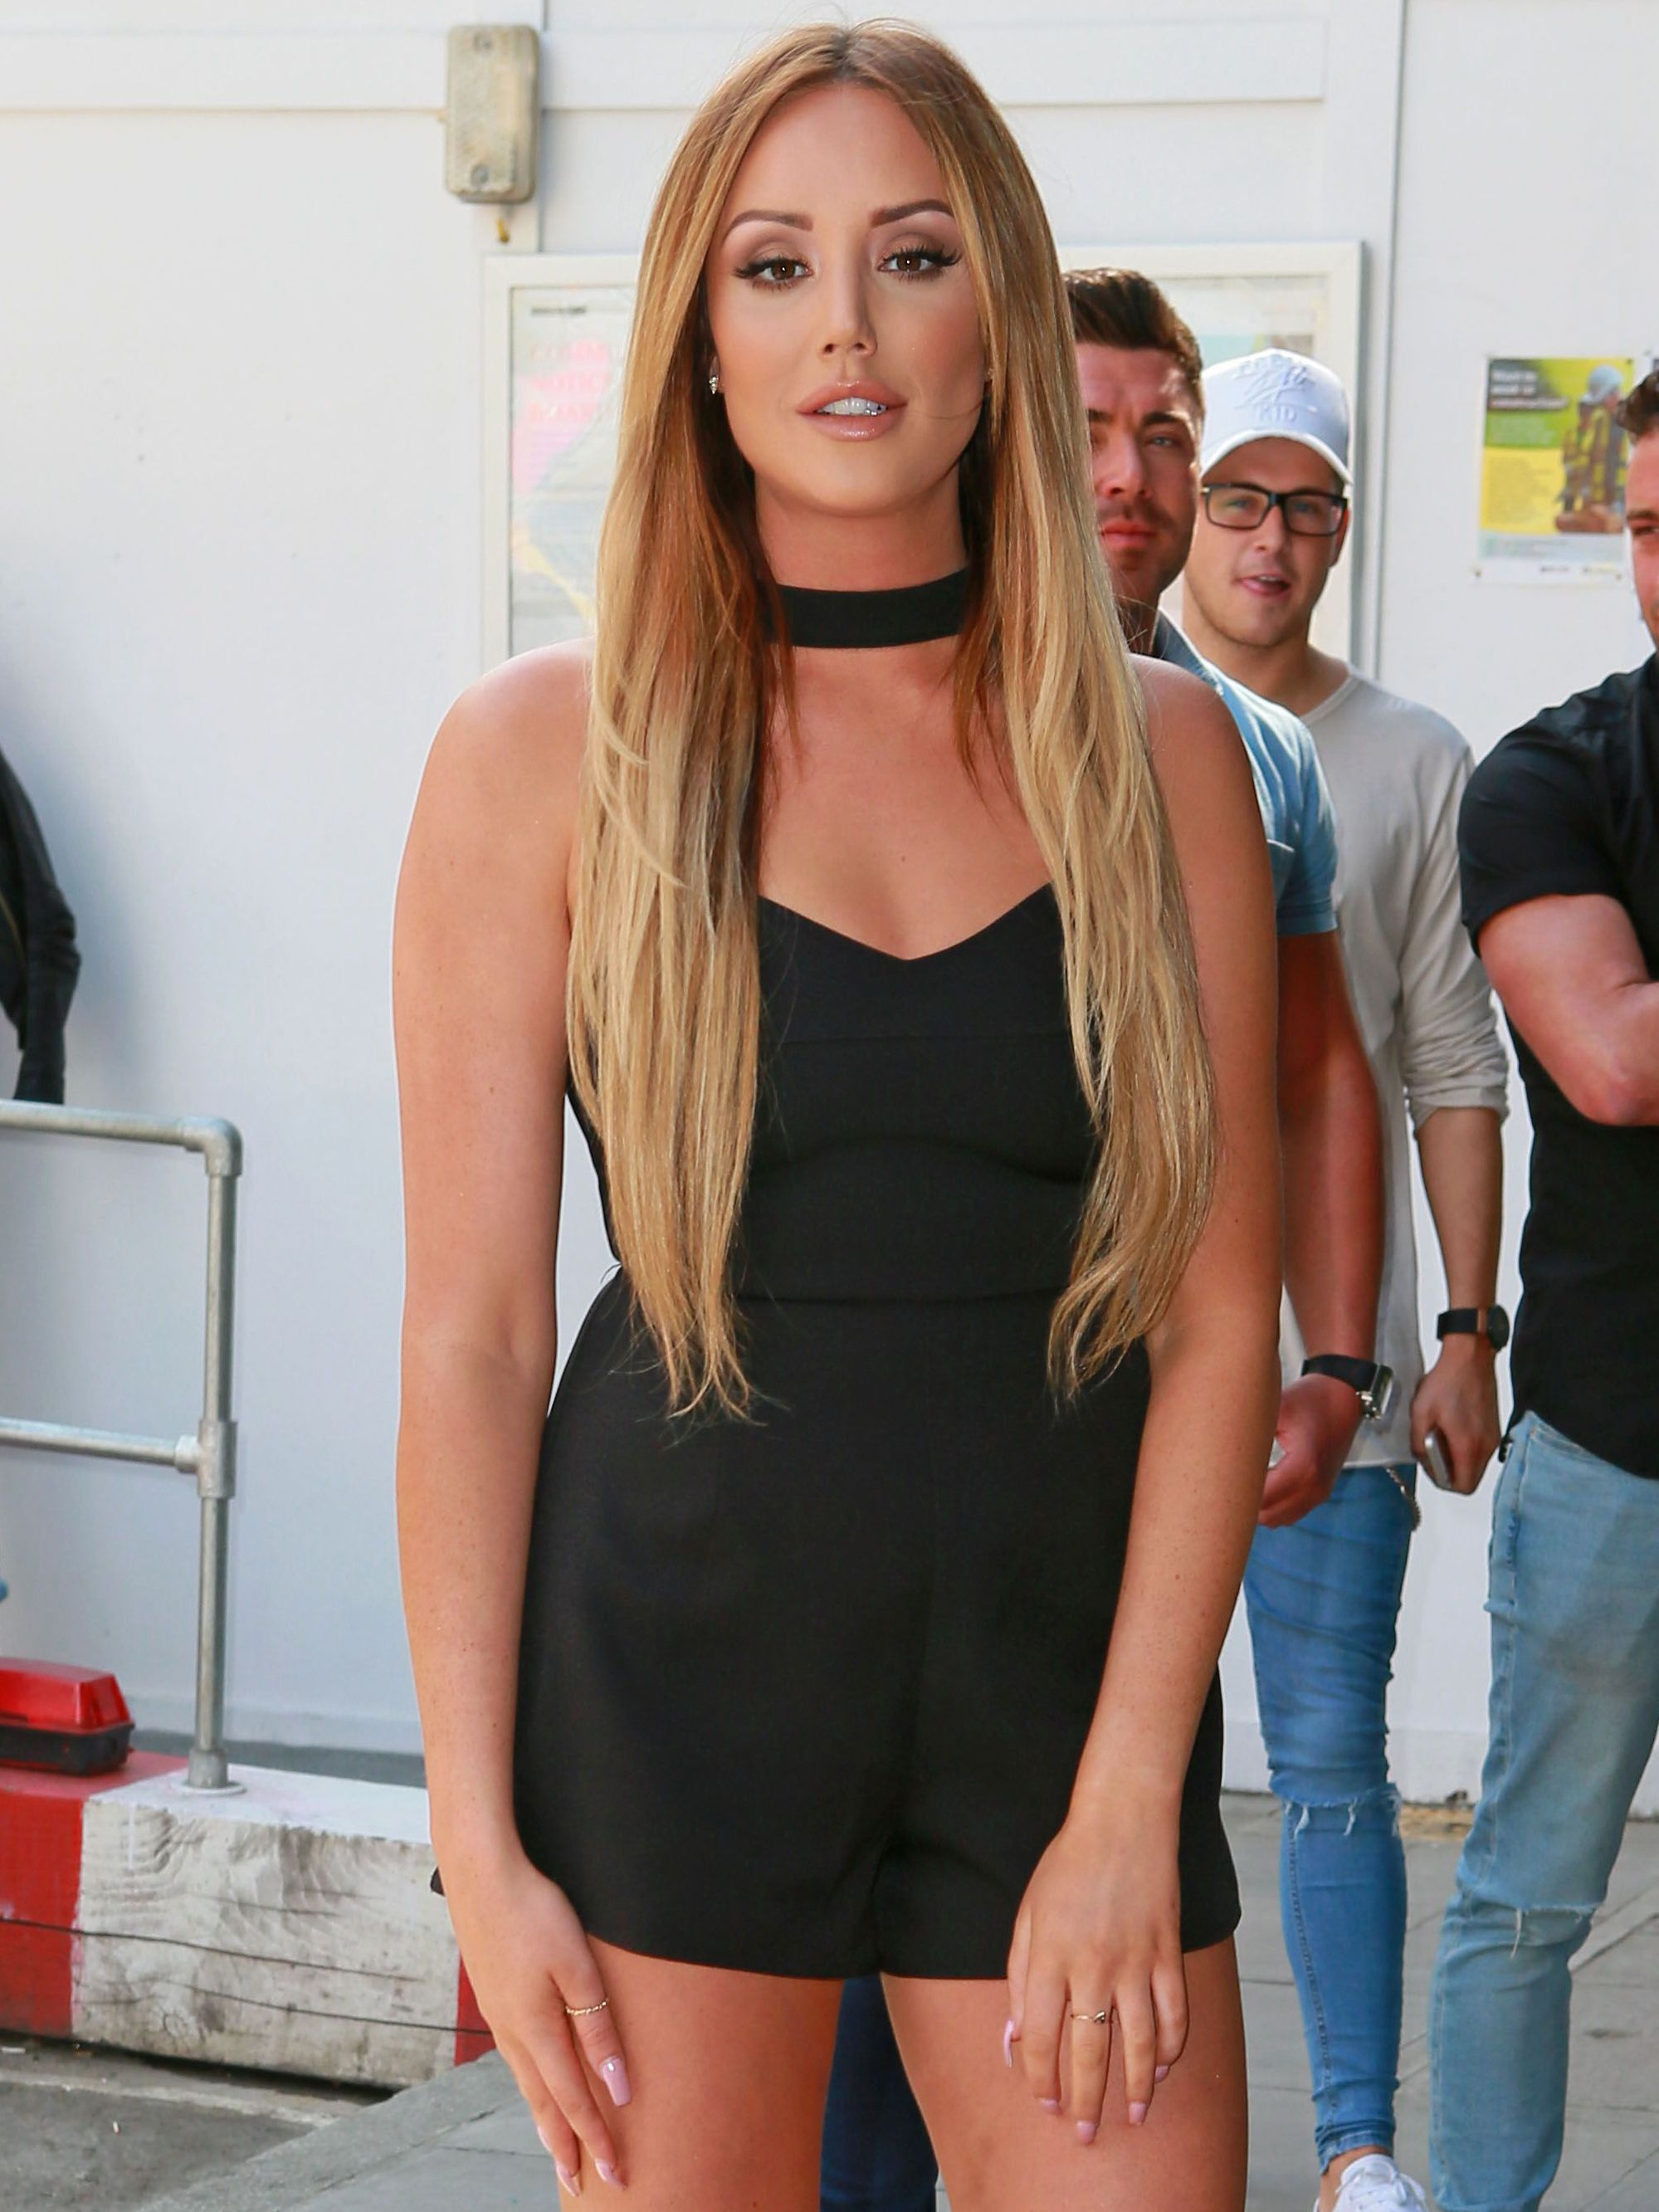 Ass Charlotte Crosby nude (57 photos), Sexy, Cleavage, Feet, cleavage 2006